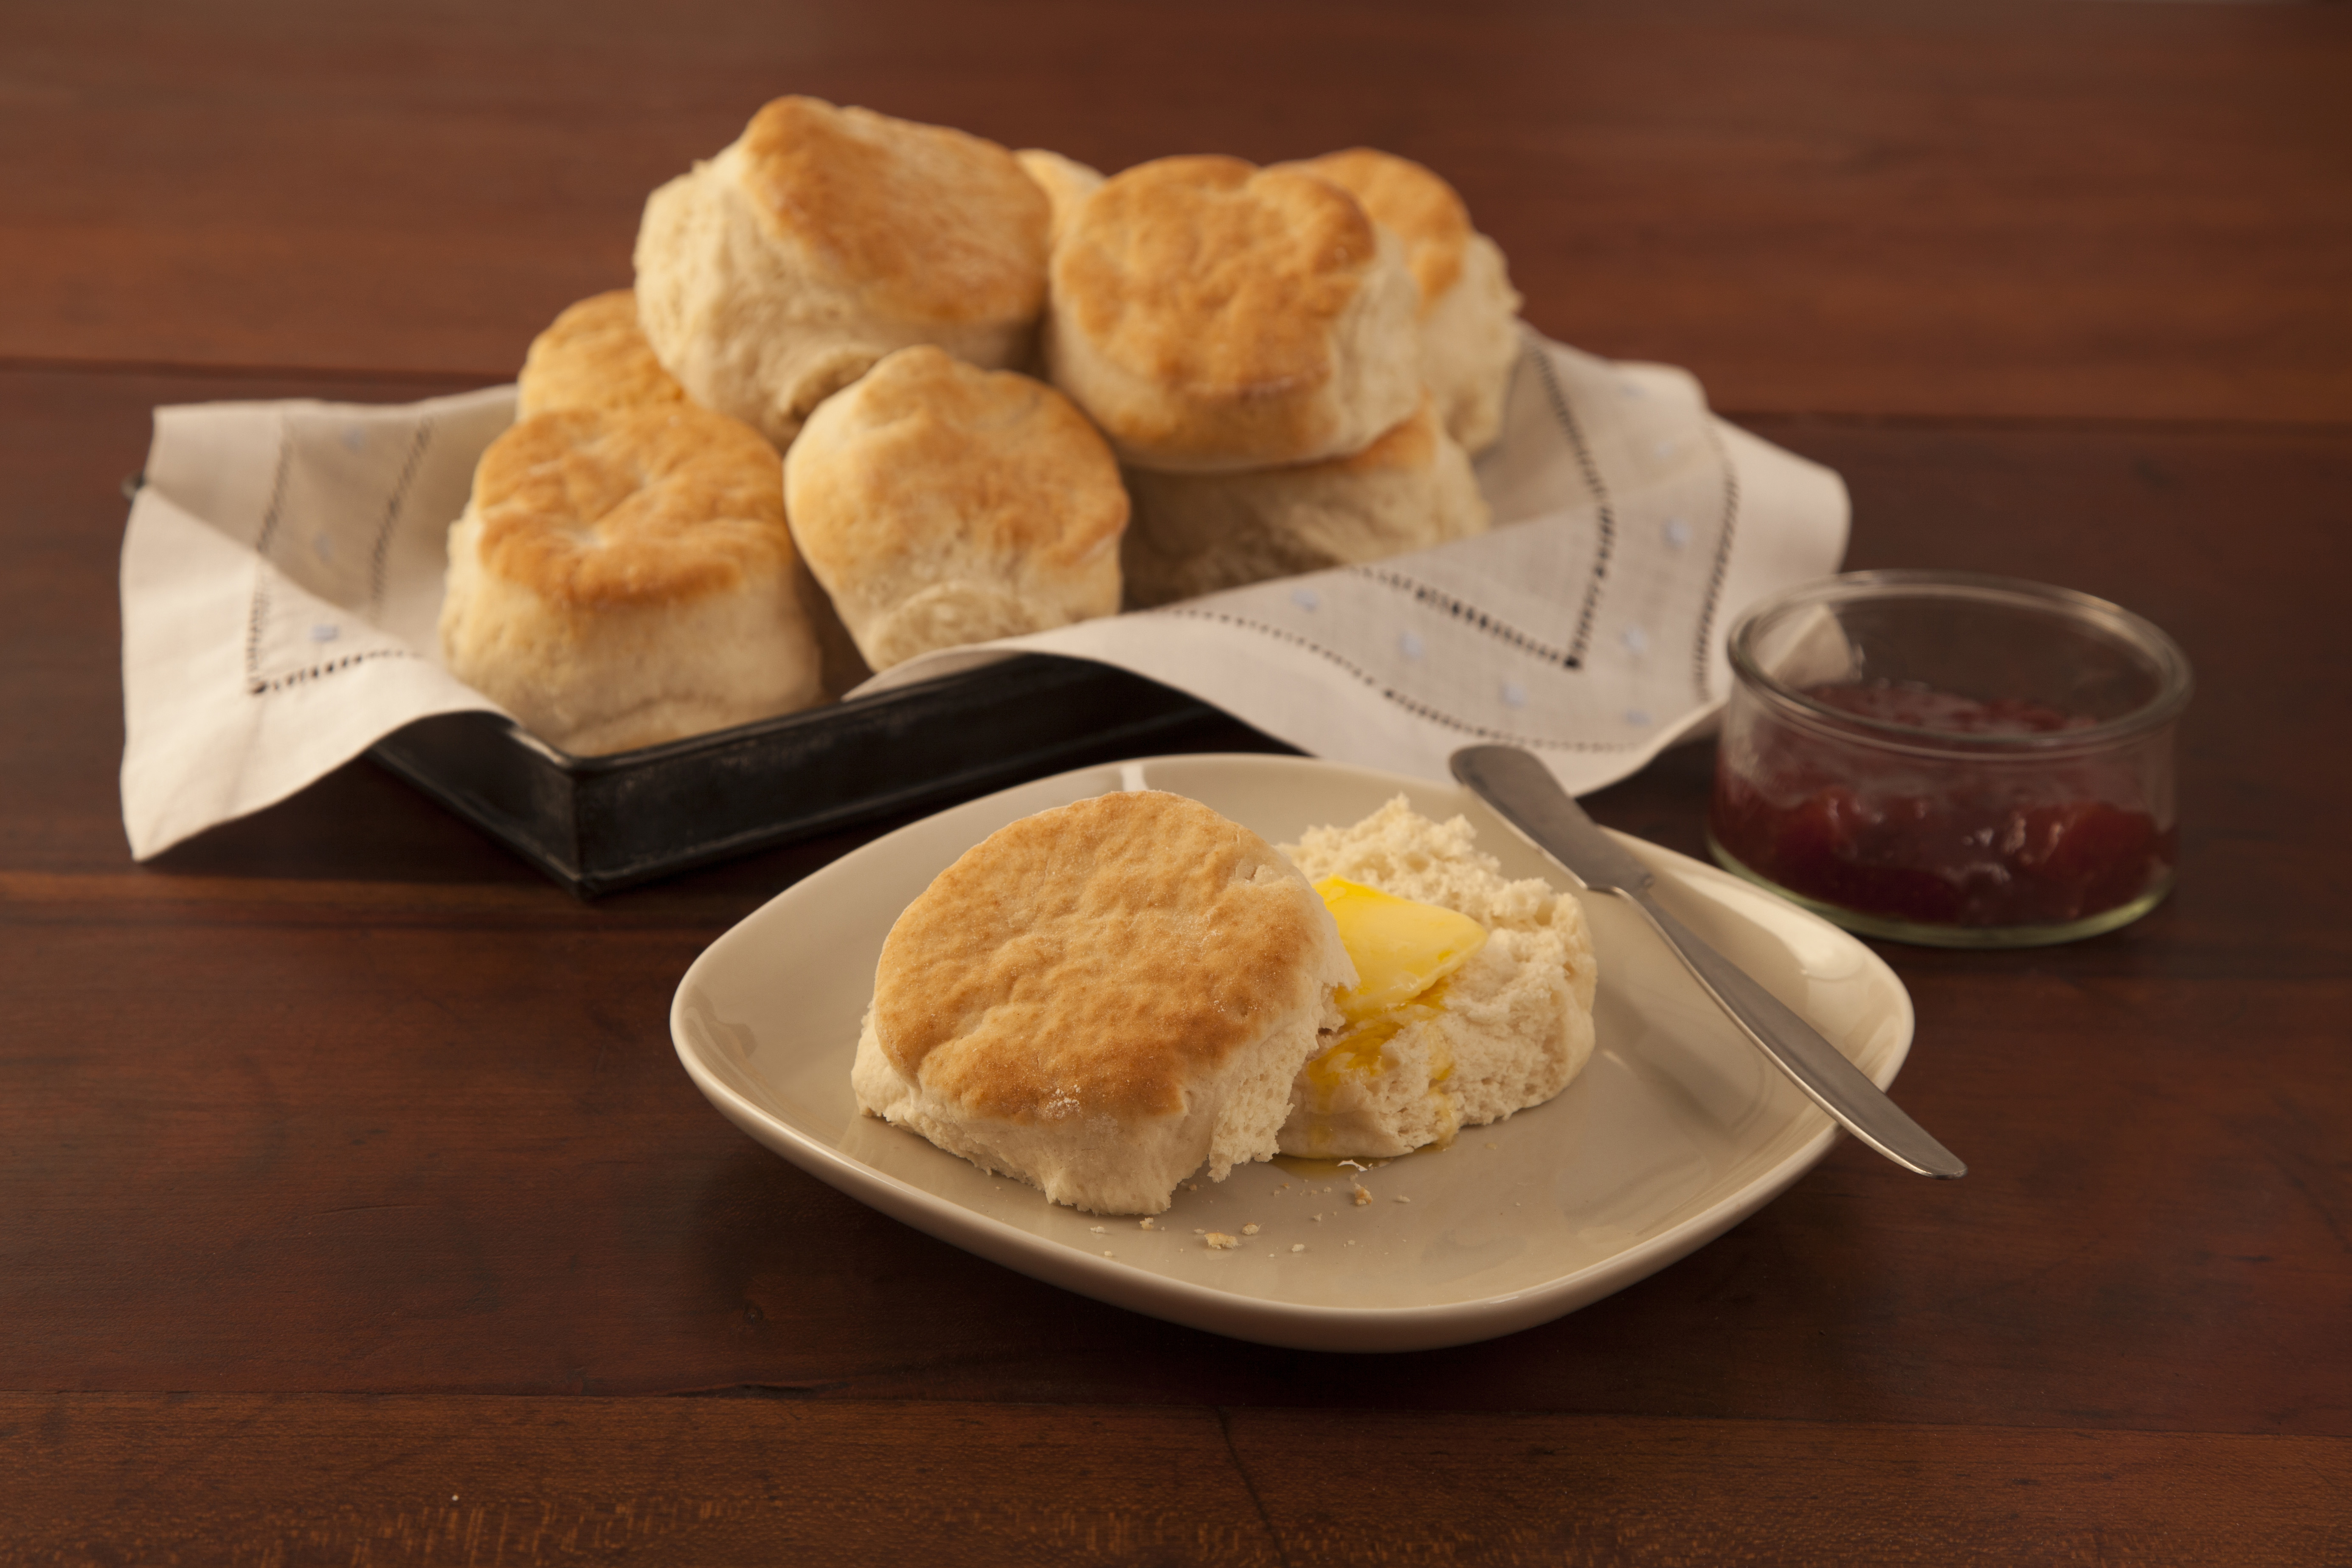 Biscuits-C.H. Guenther & Son